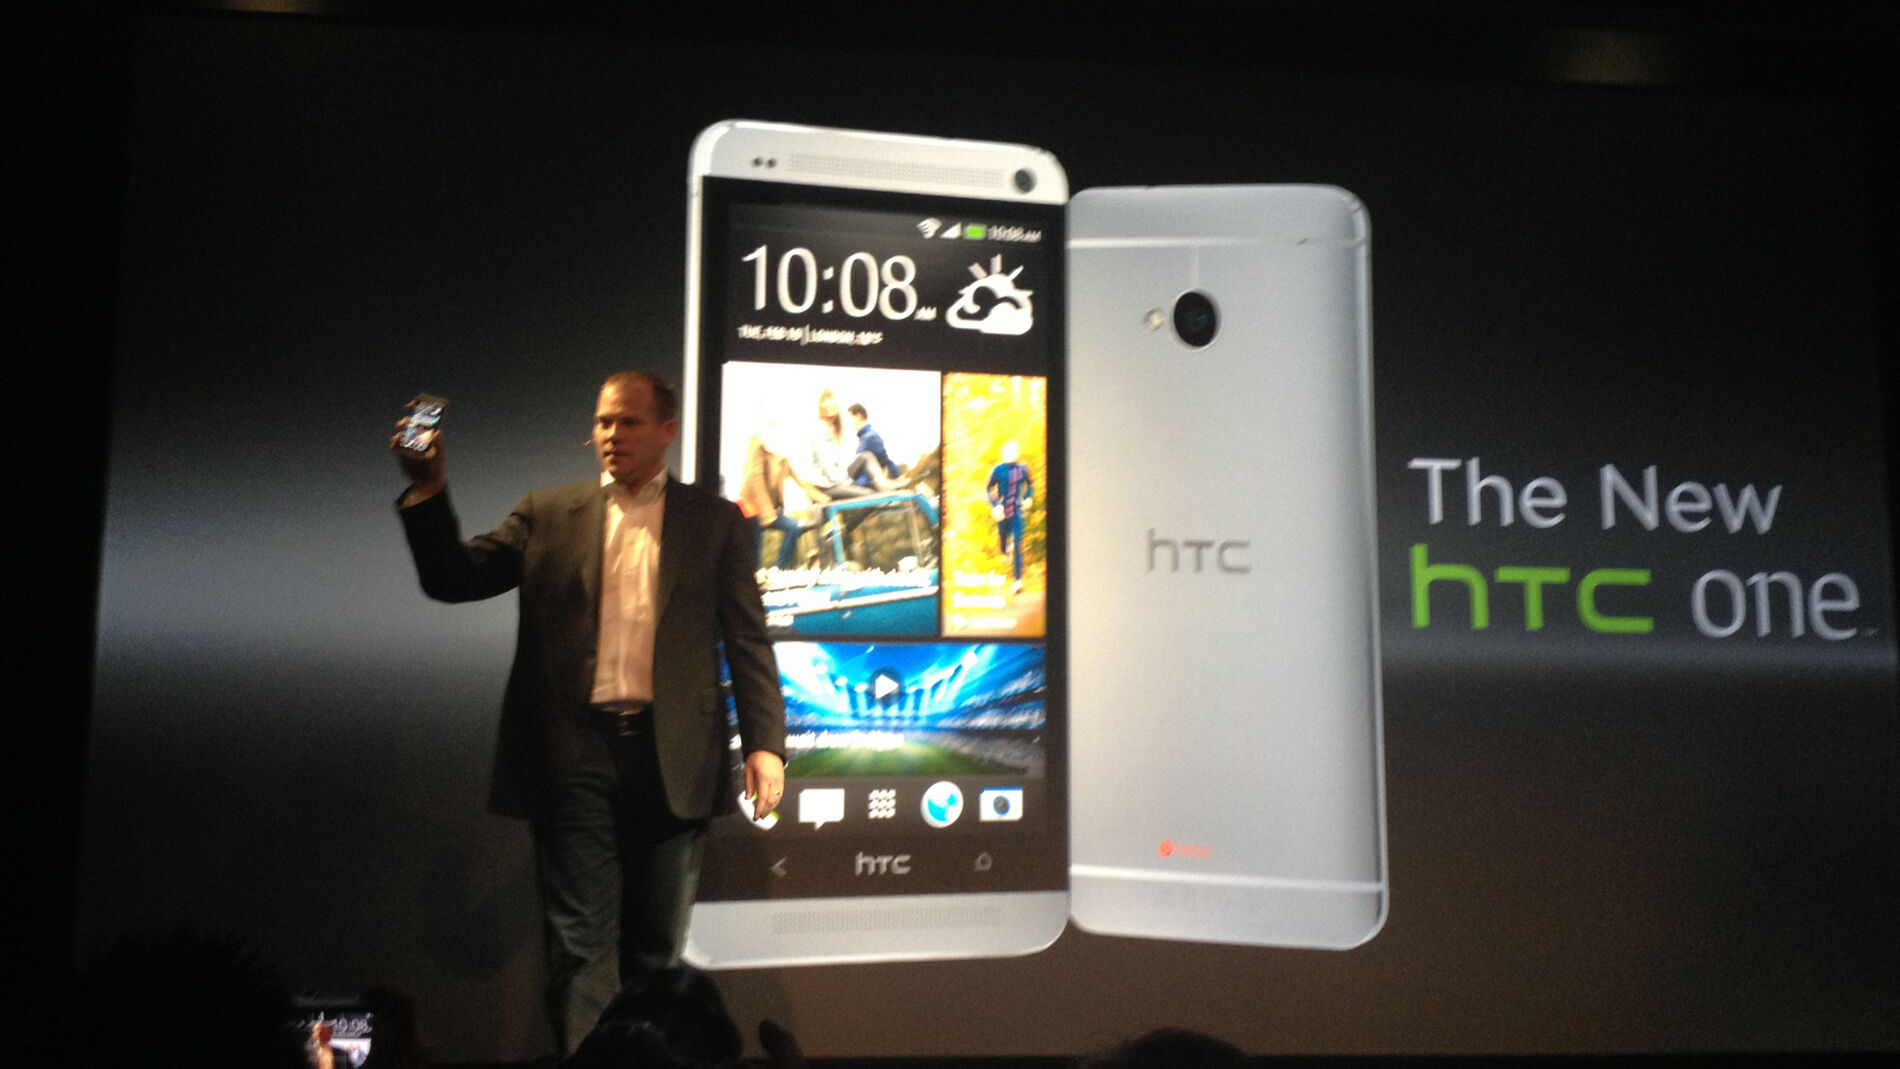 HTC reports operating loss of RM 514m in Q4 2015 21